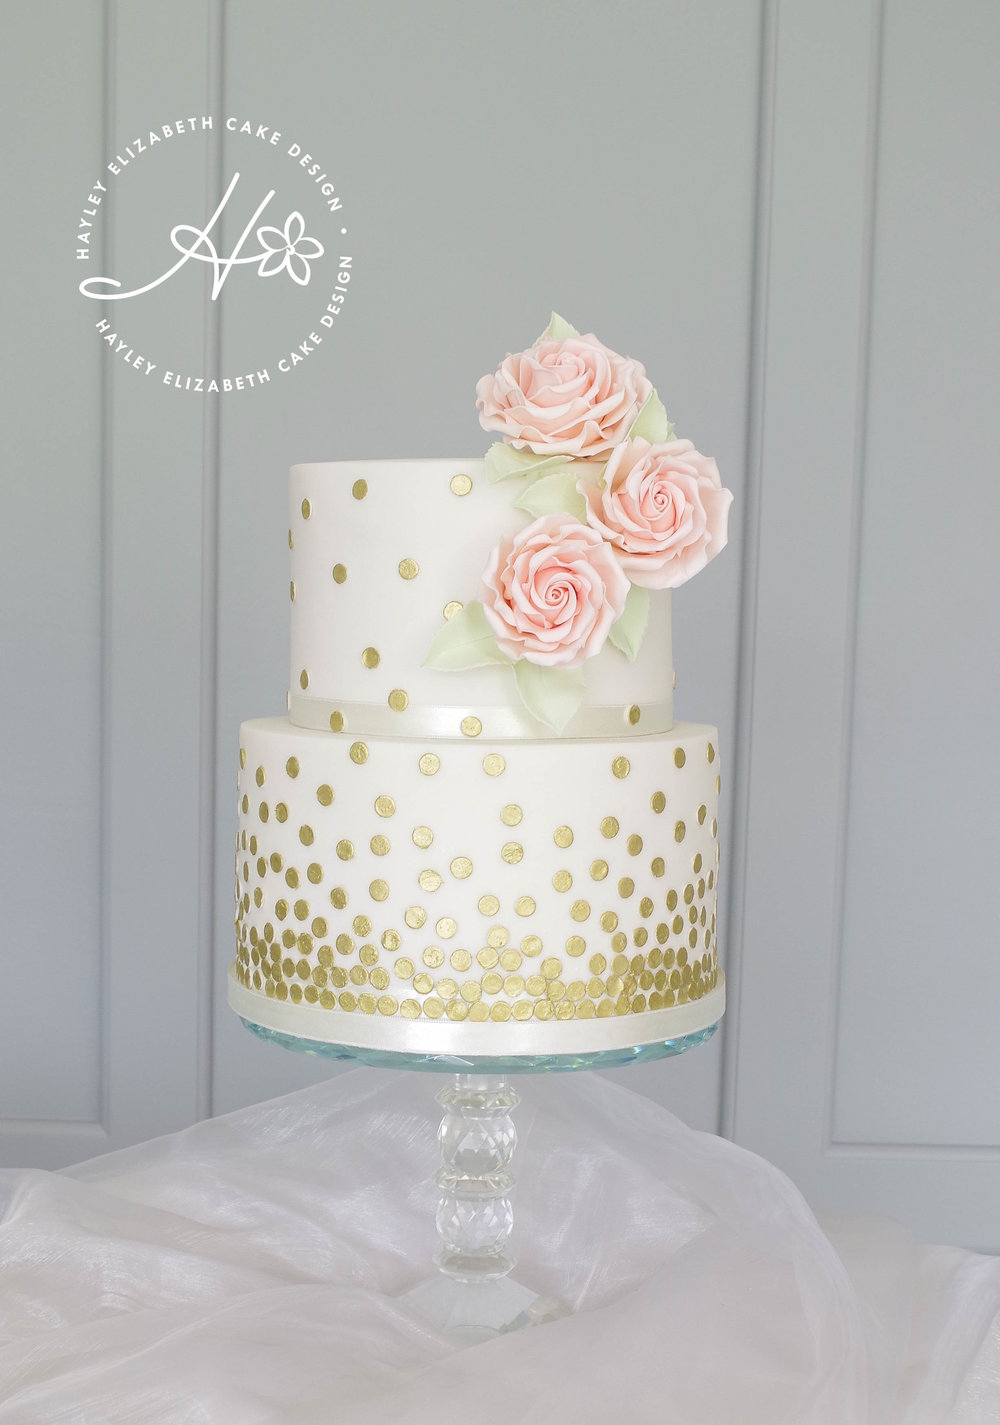 white and gold dots wedding cake with blush roses.jpg